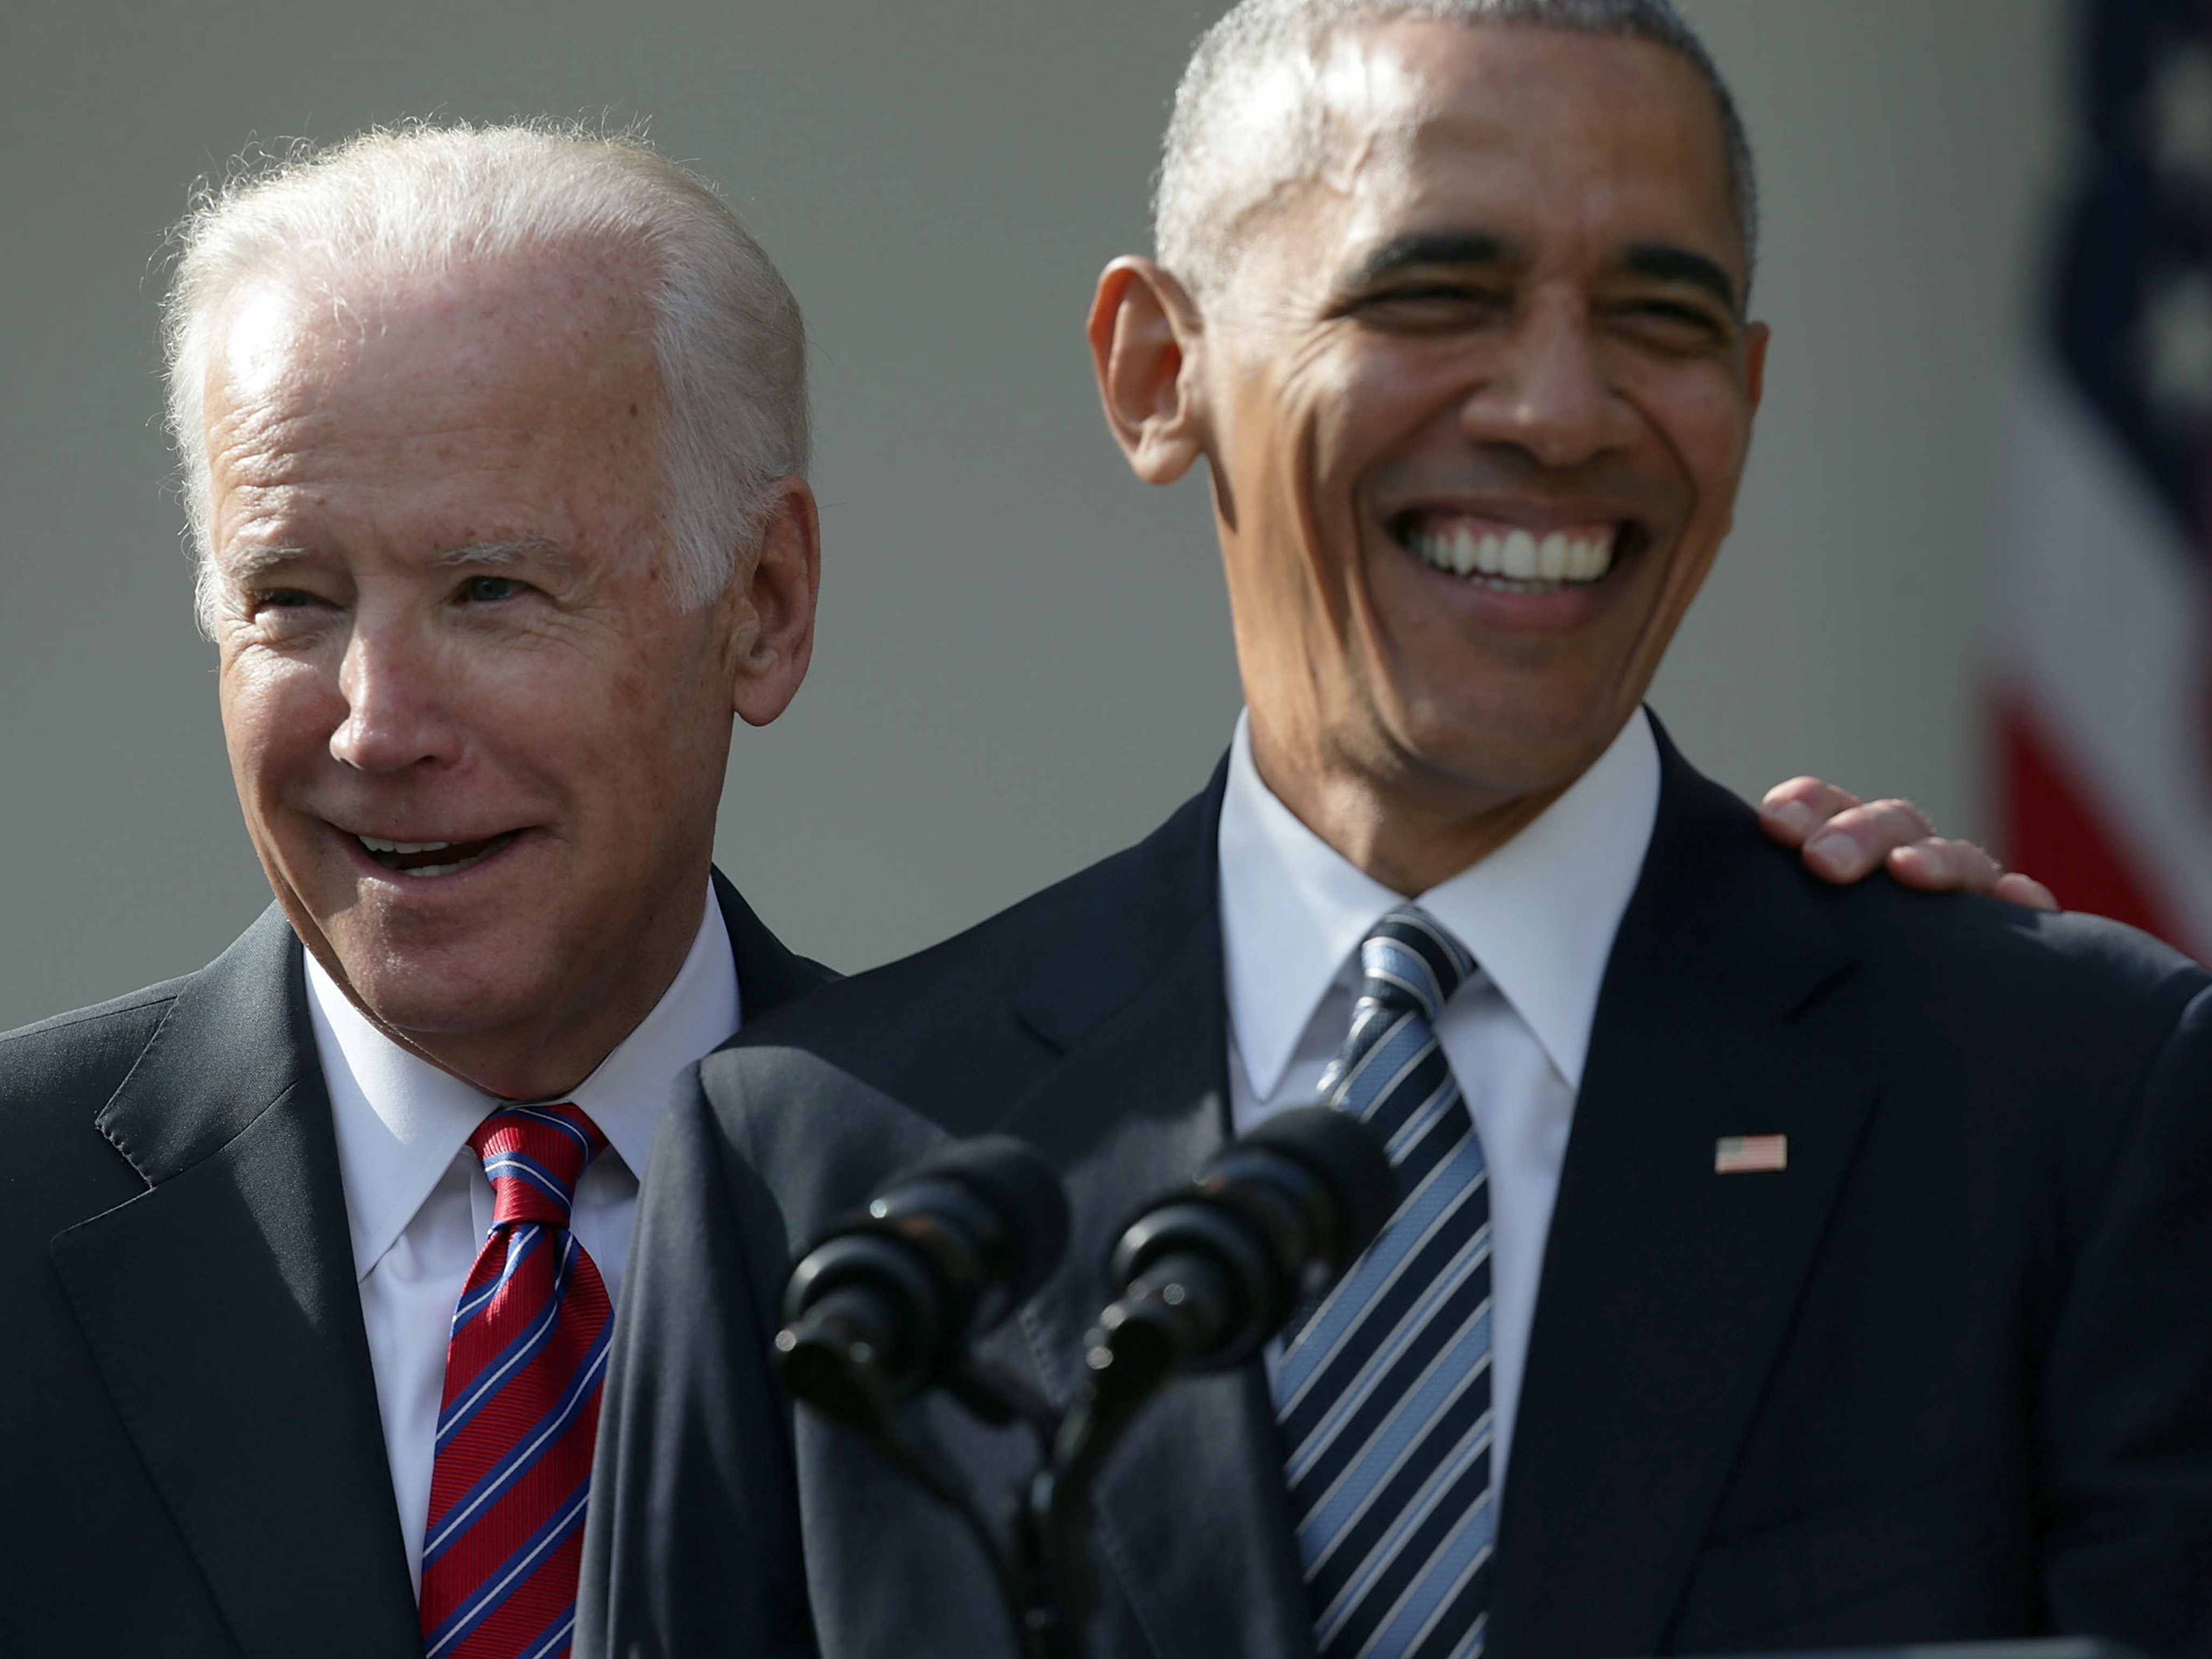 U.S. President Barack Obama and Vice President Joseph Biden share a moment during a statement about the election in the Rose Garden at the White House November 9, 2016 in Washington, DC. Republican presidential nominee Donald Trump has won the election and will become the 45th president of the United States.